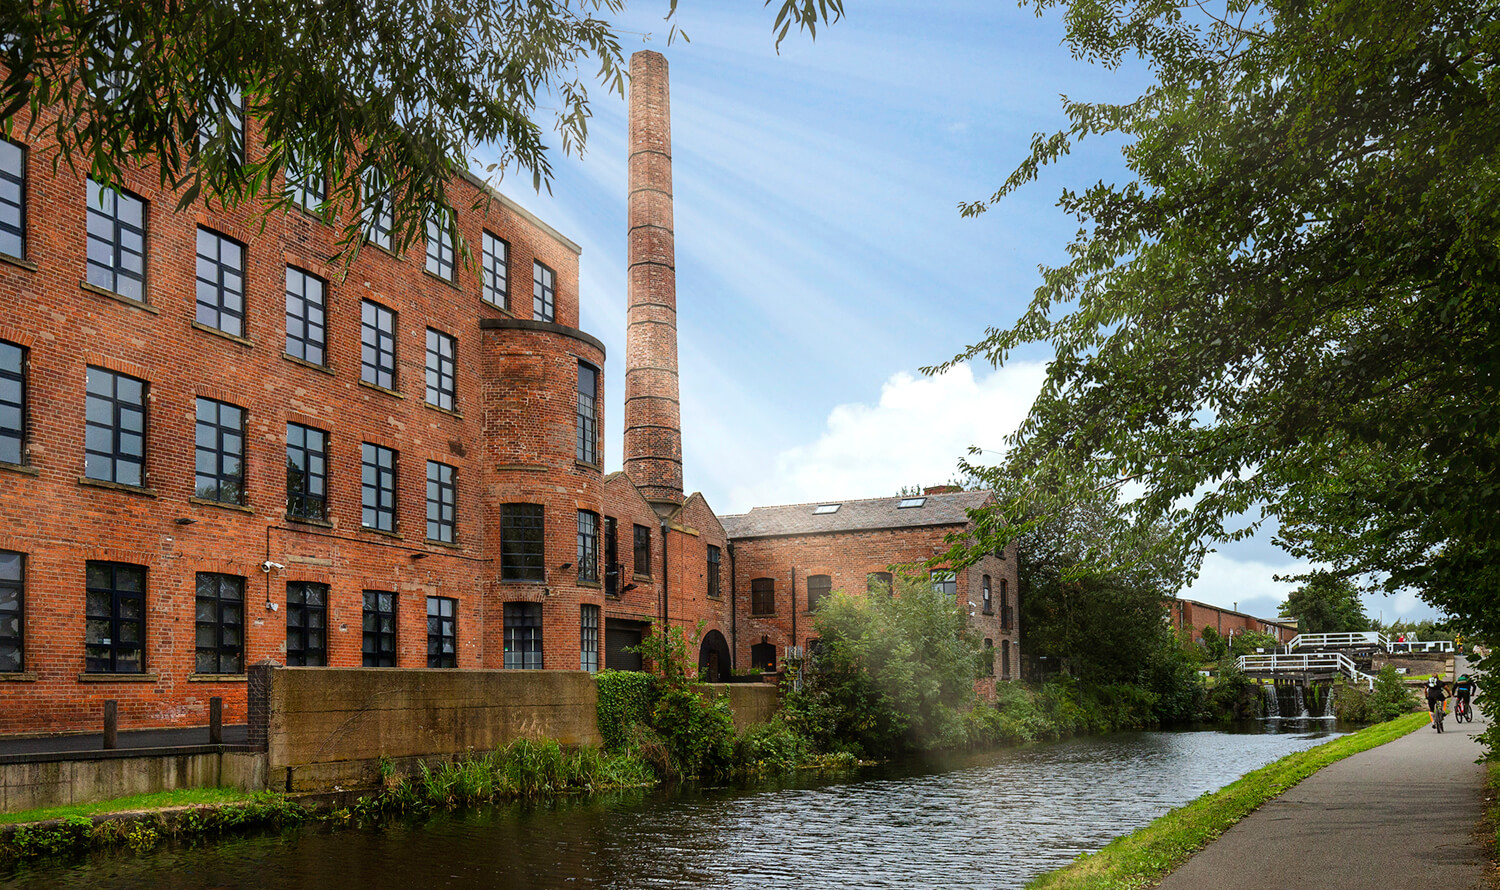 Grade II renovation: now home for many businesses in Leeds